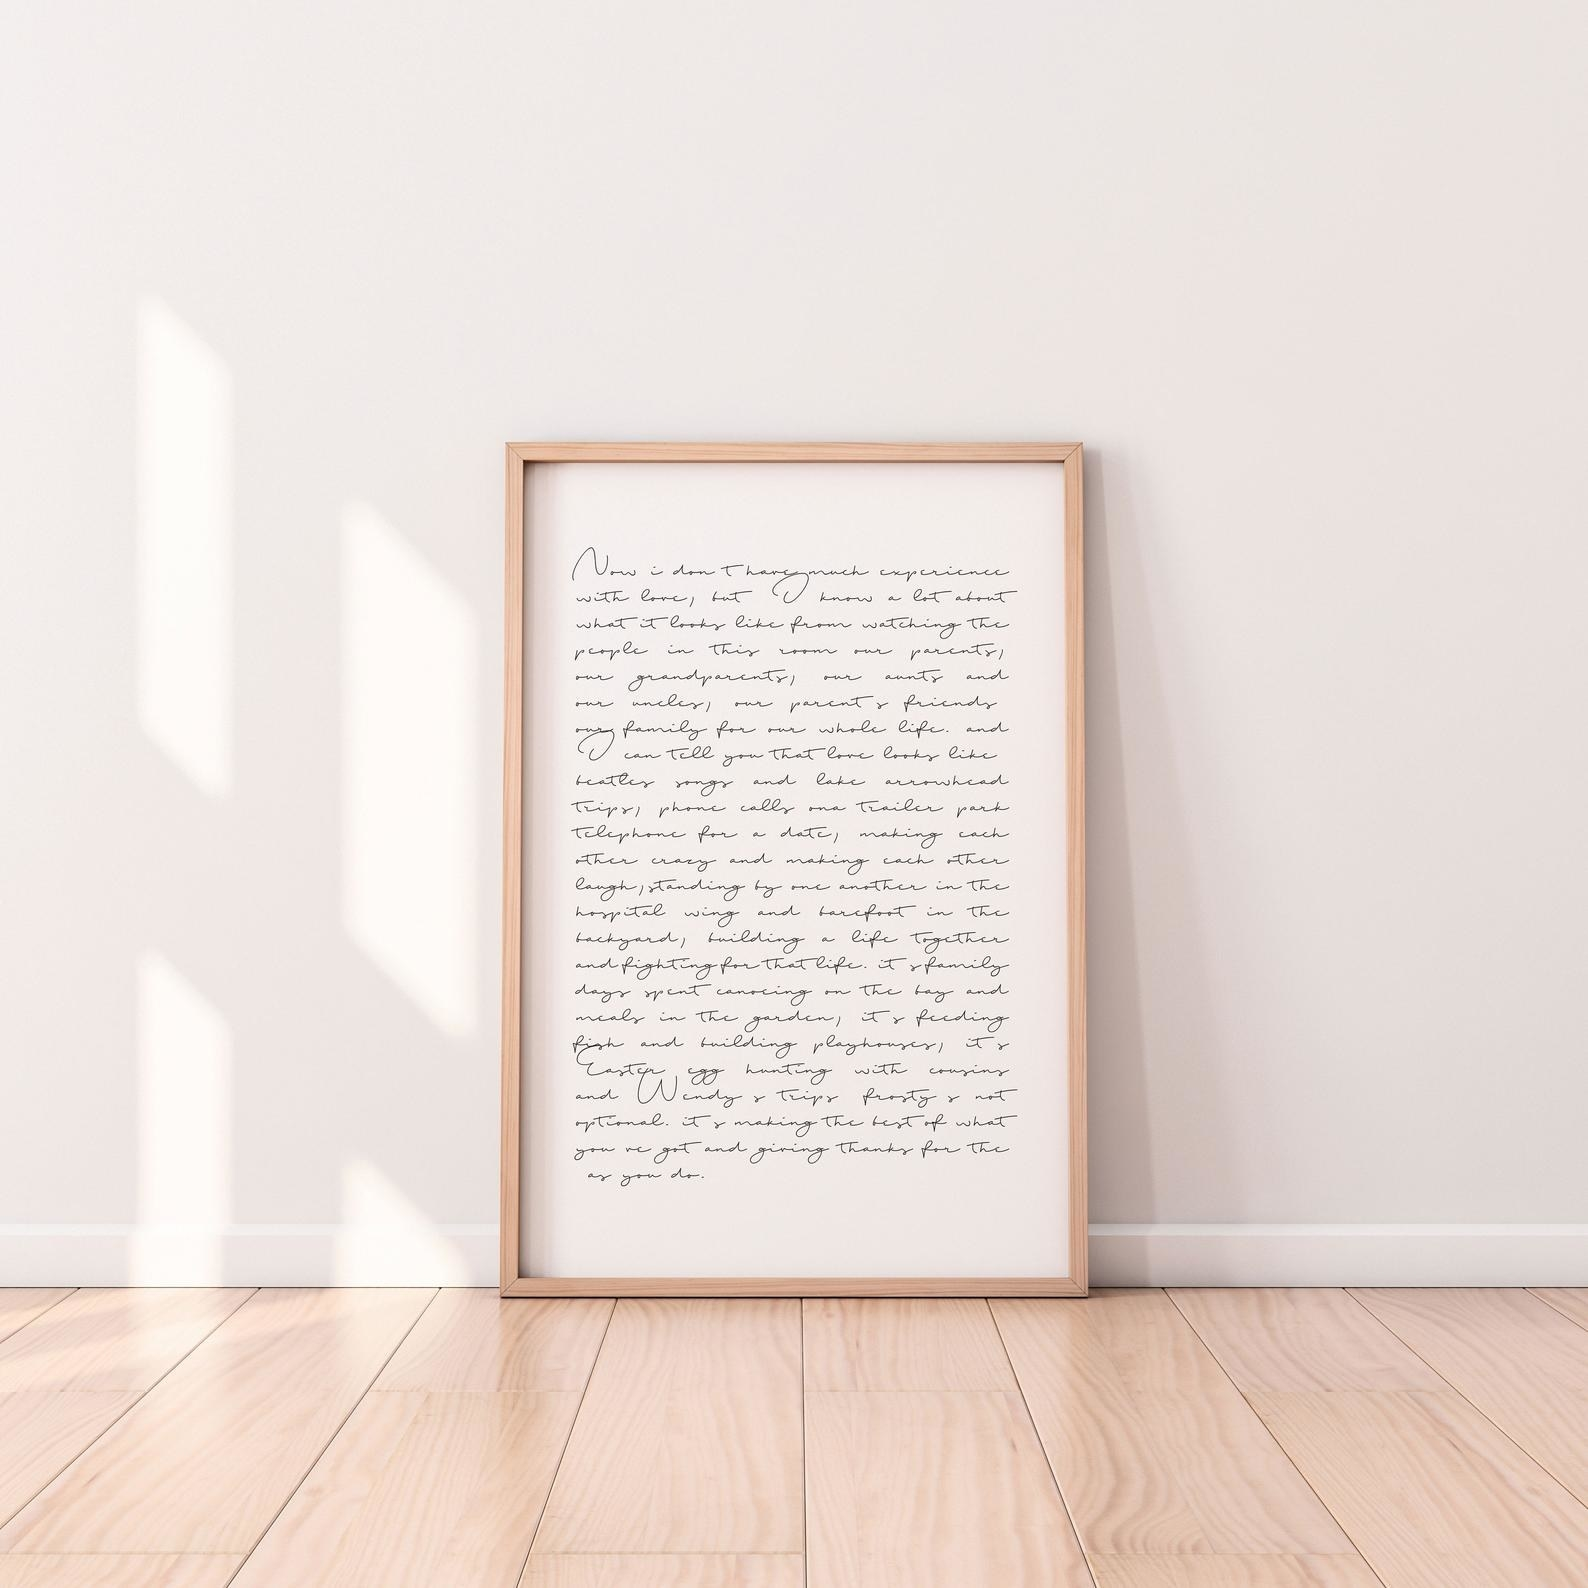 White canvas framed in wood